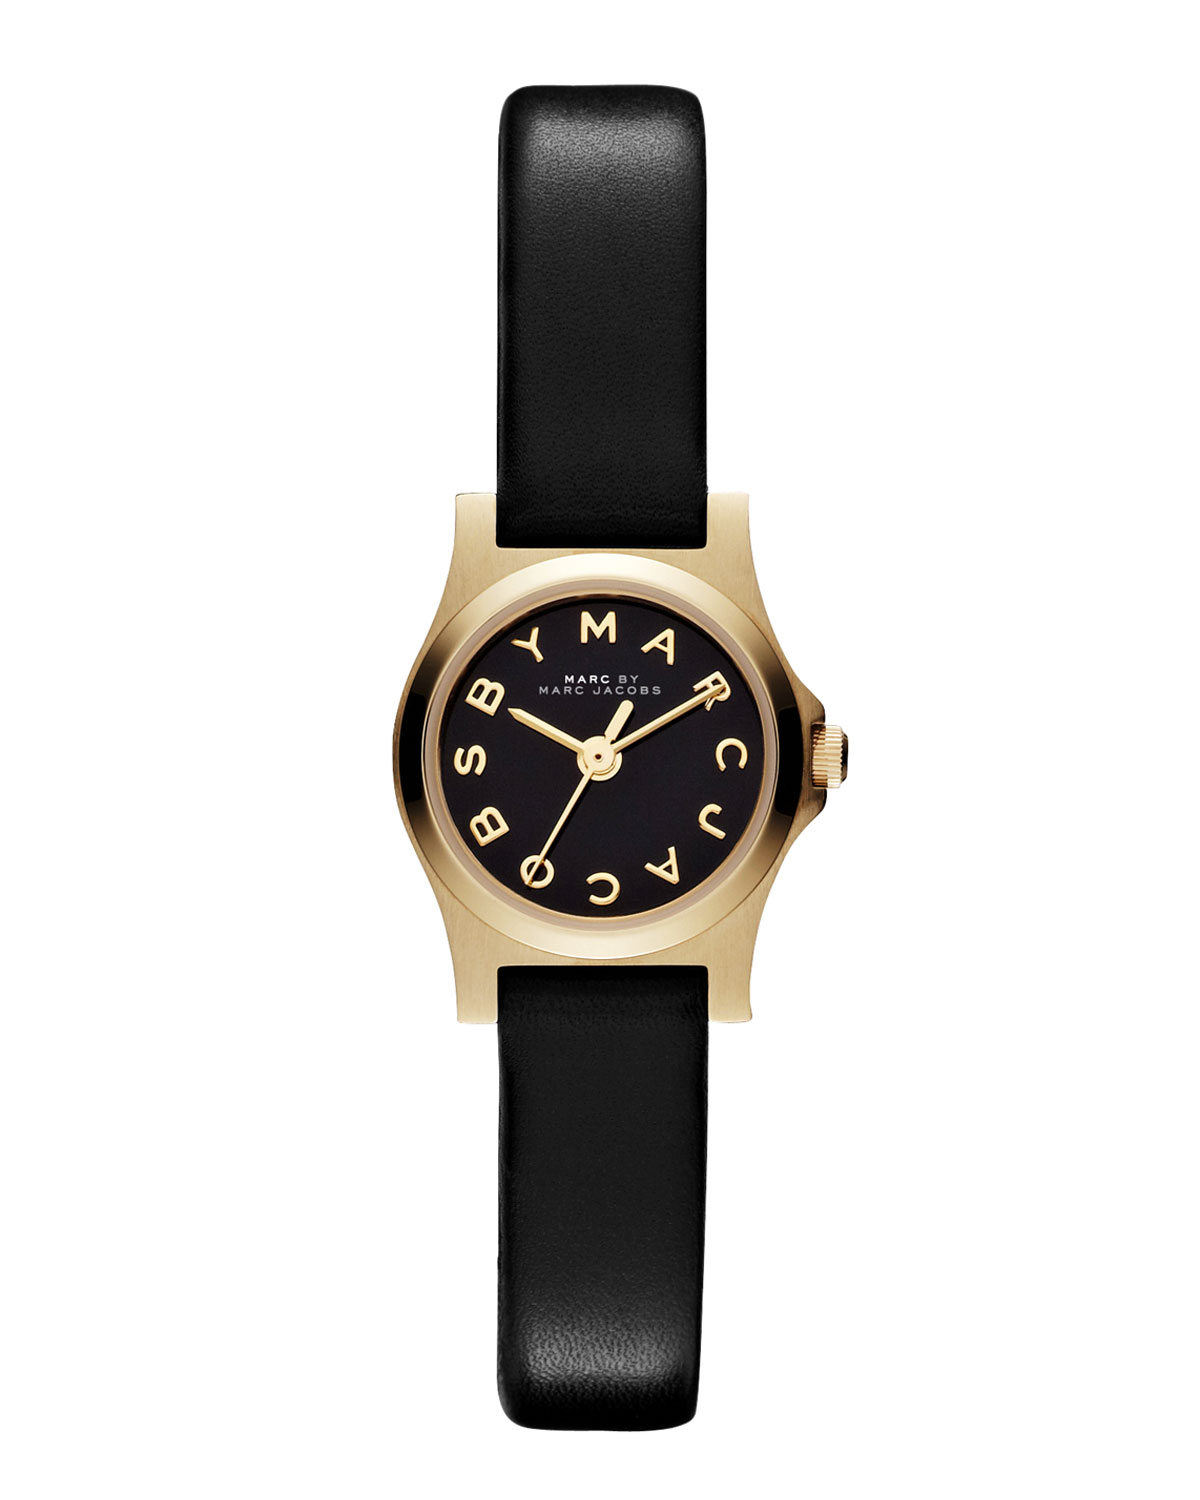 a2498085a4798 MARC by Marc Jacobs Henry Dinky Analog Watch with Leather Strap,  Golden/Black